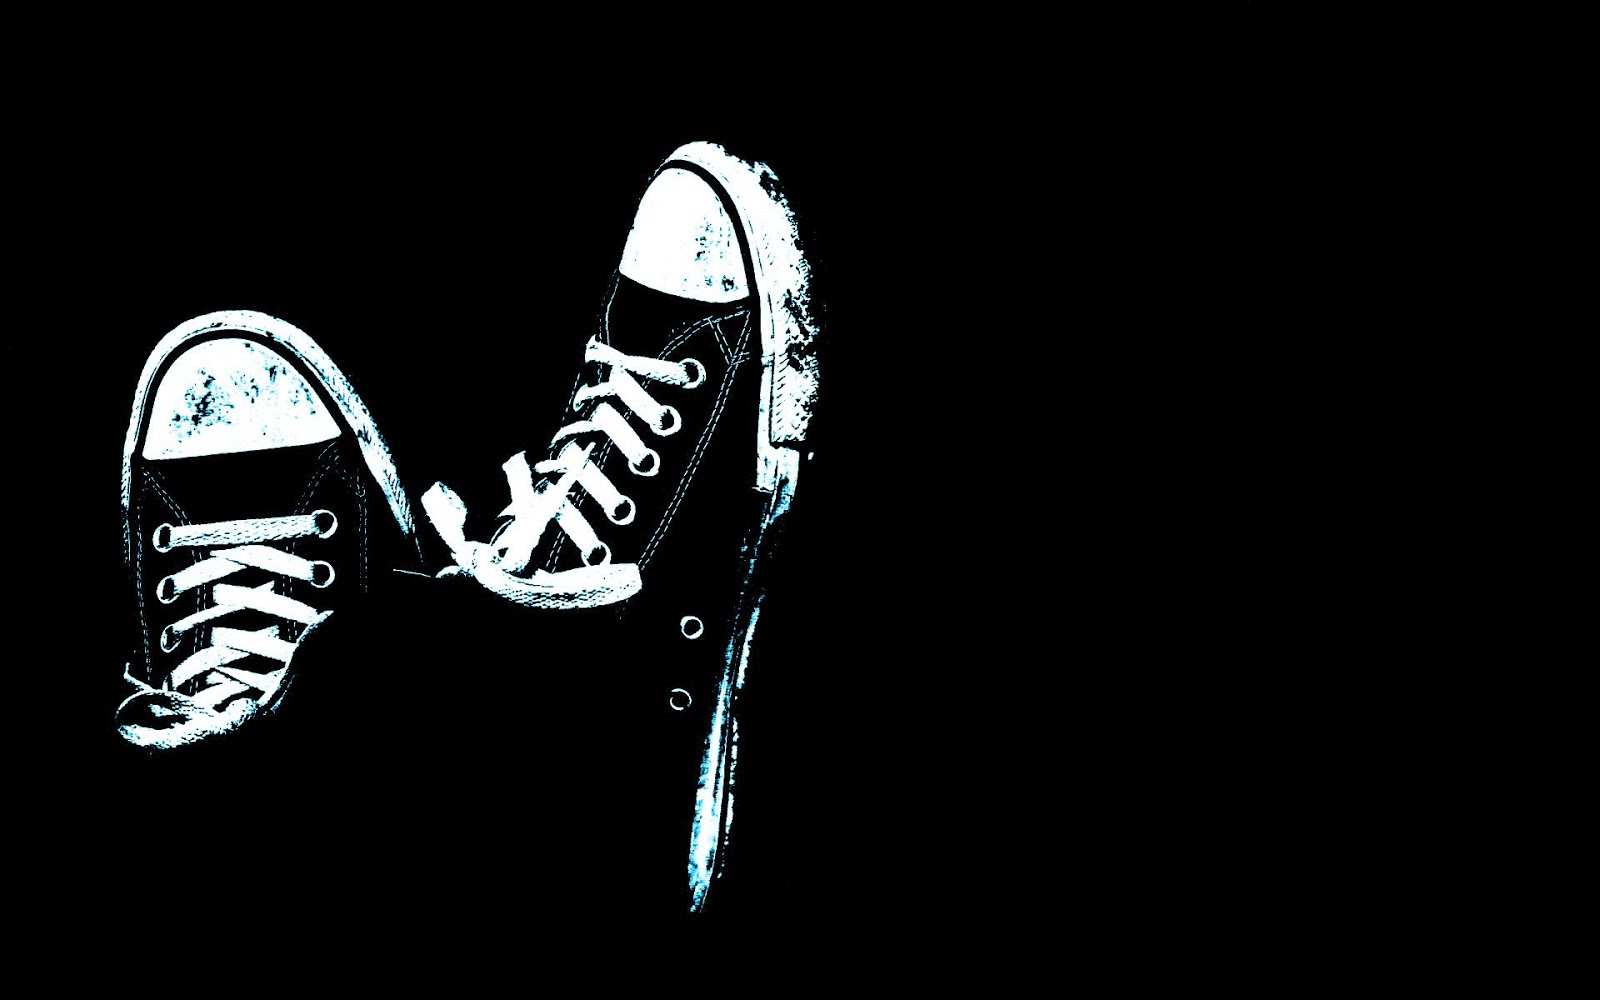 Wallpaper - Sneakers Black And White , HD Wallpaper & Backgrounds